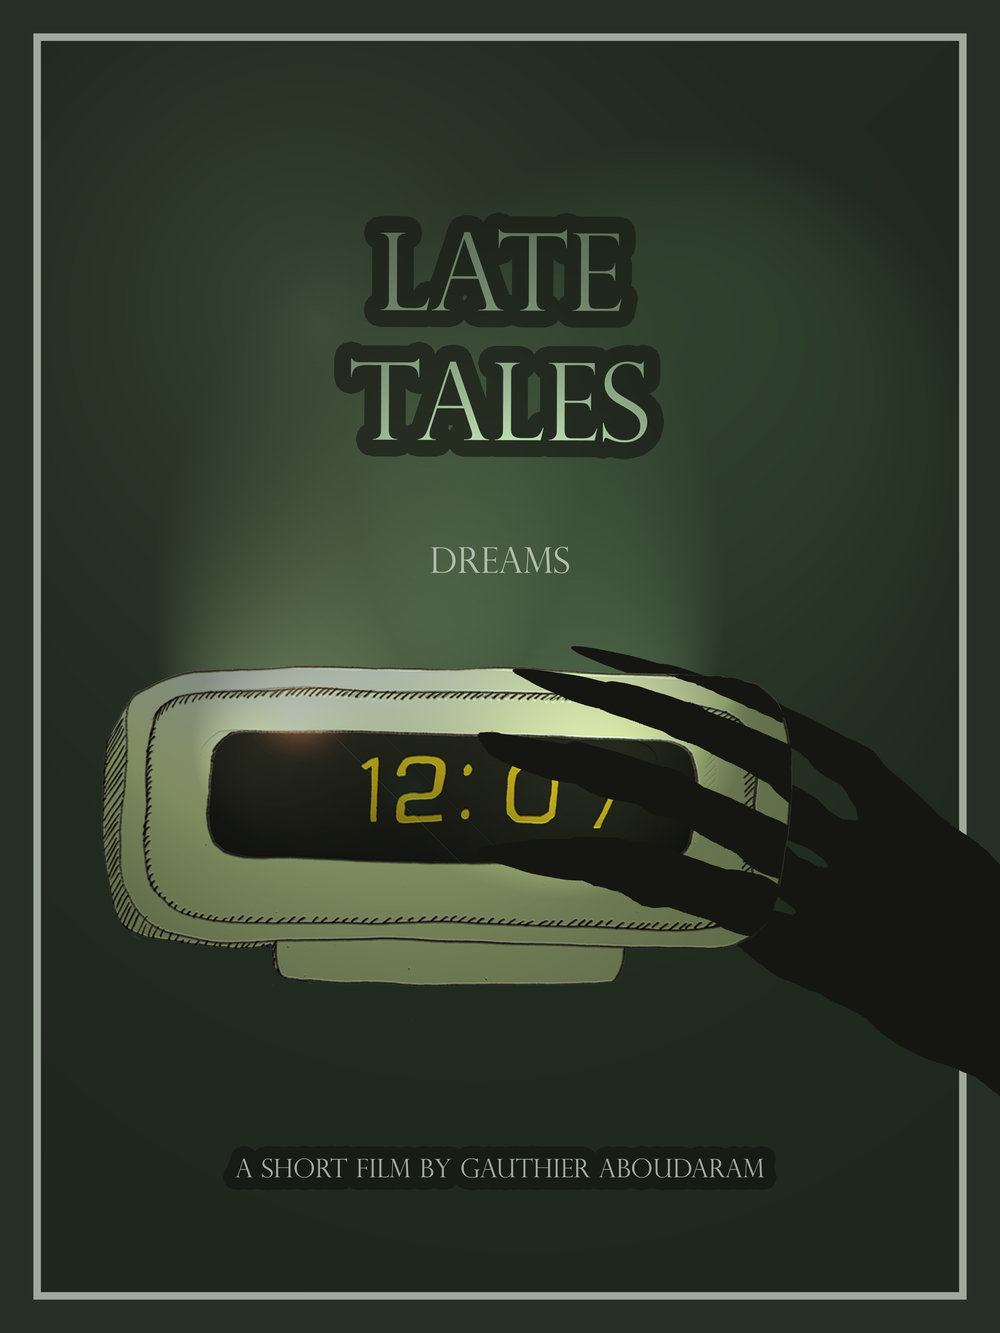 Late Tales Poster 1/4